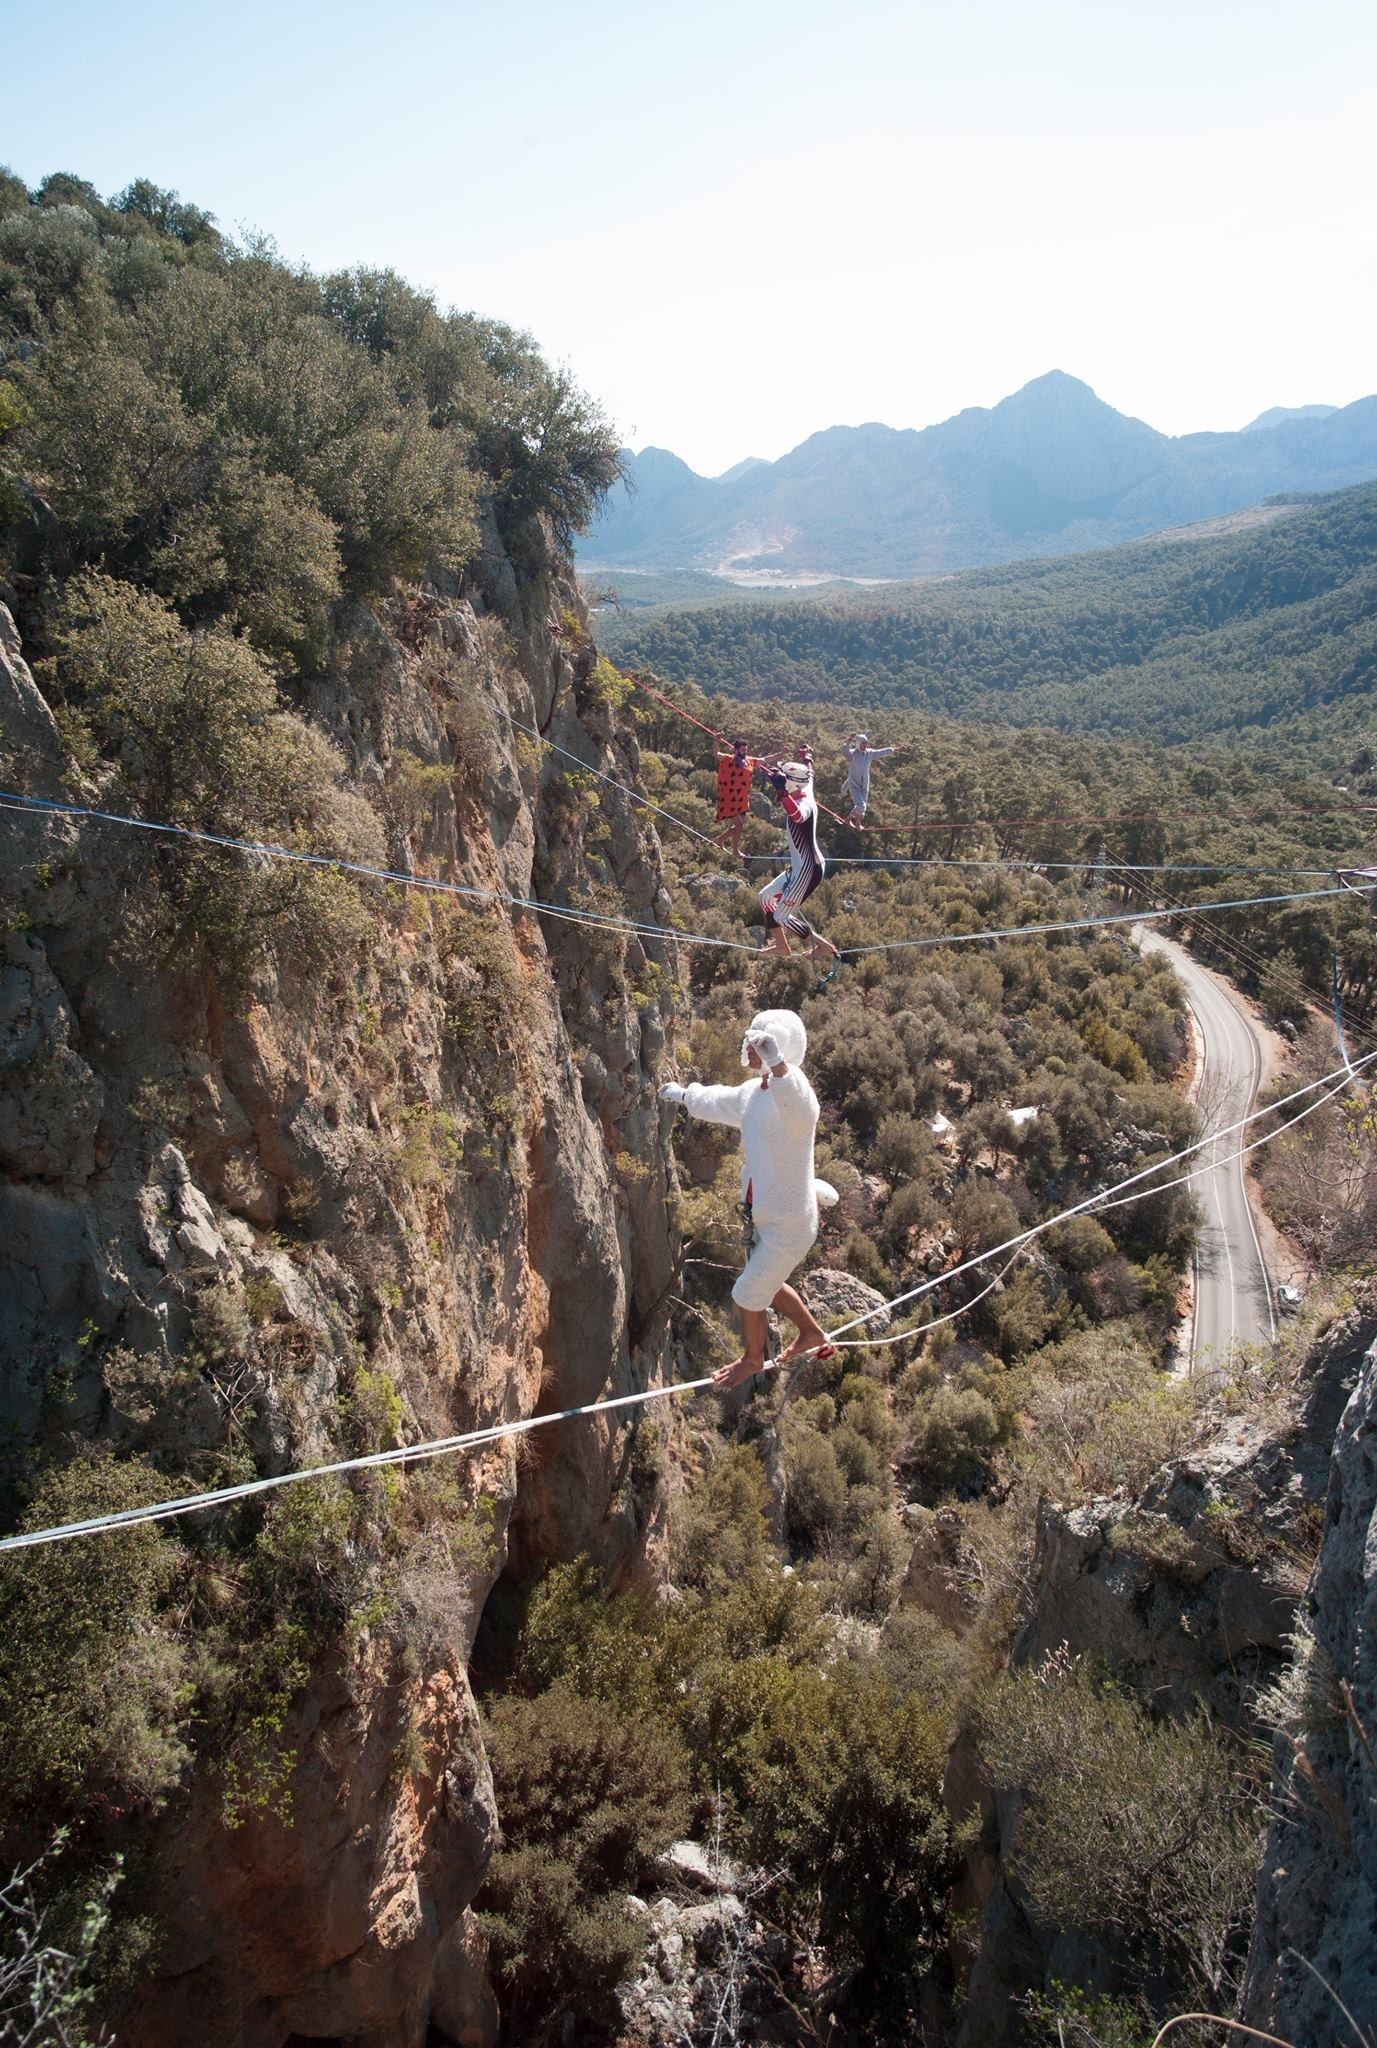 Like slackline, highline involves walking a rope similar to a tightrope between two points.